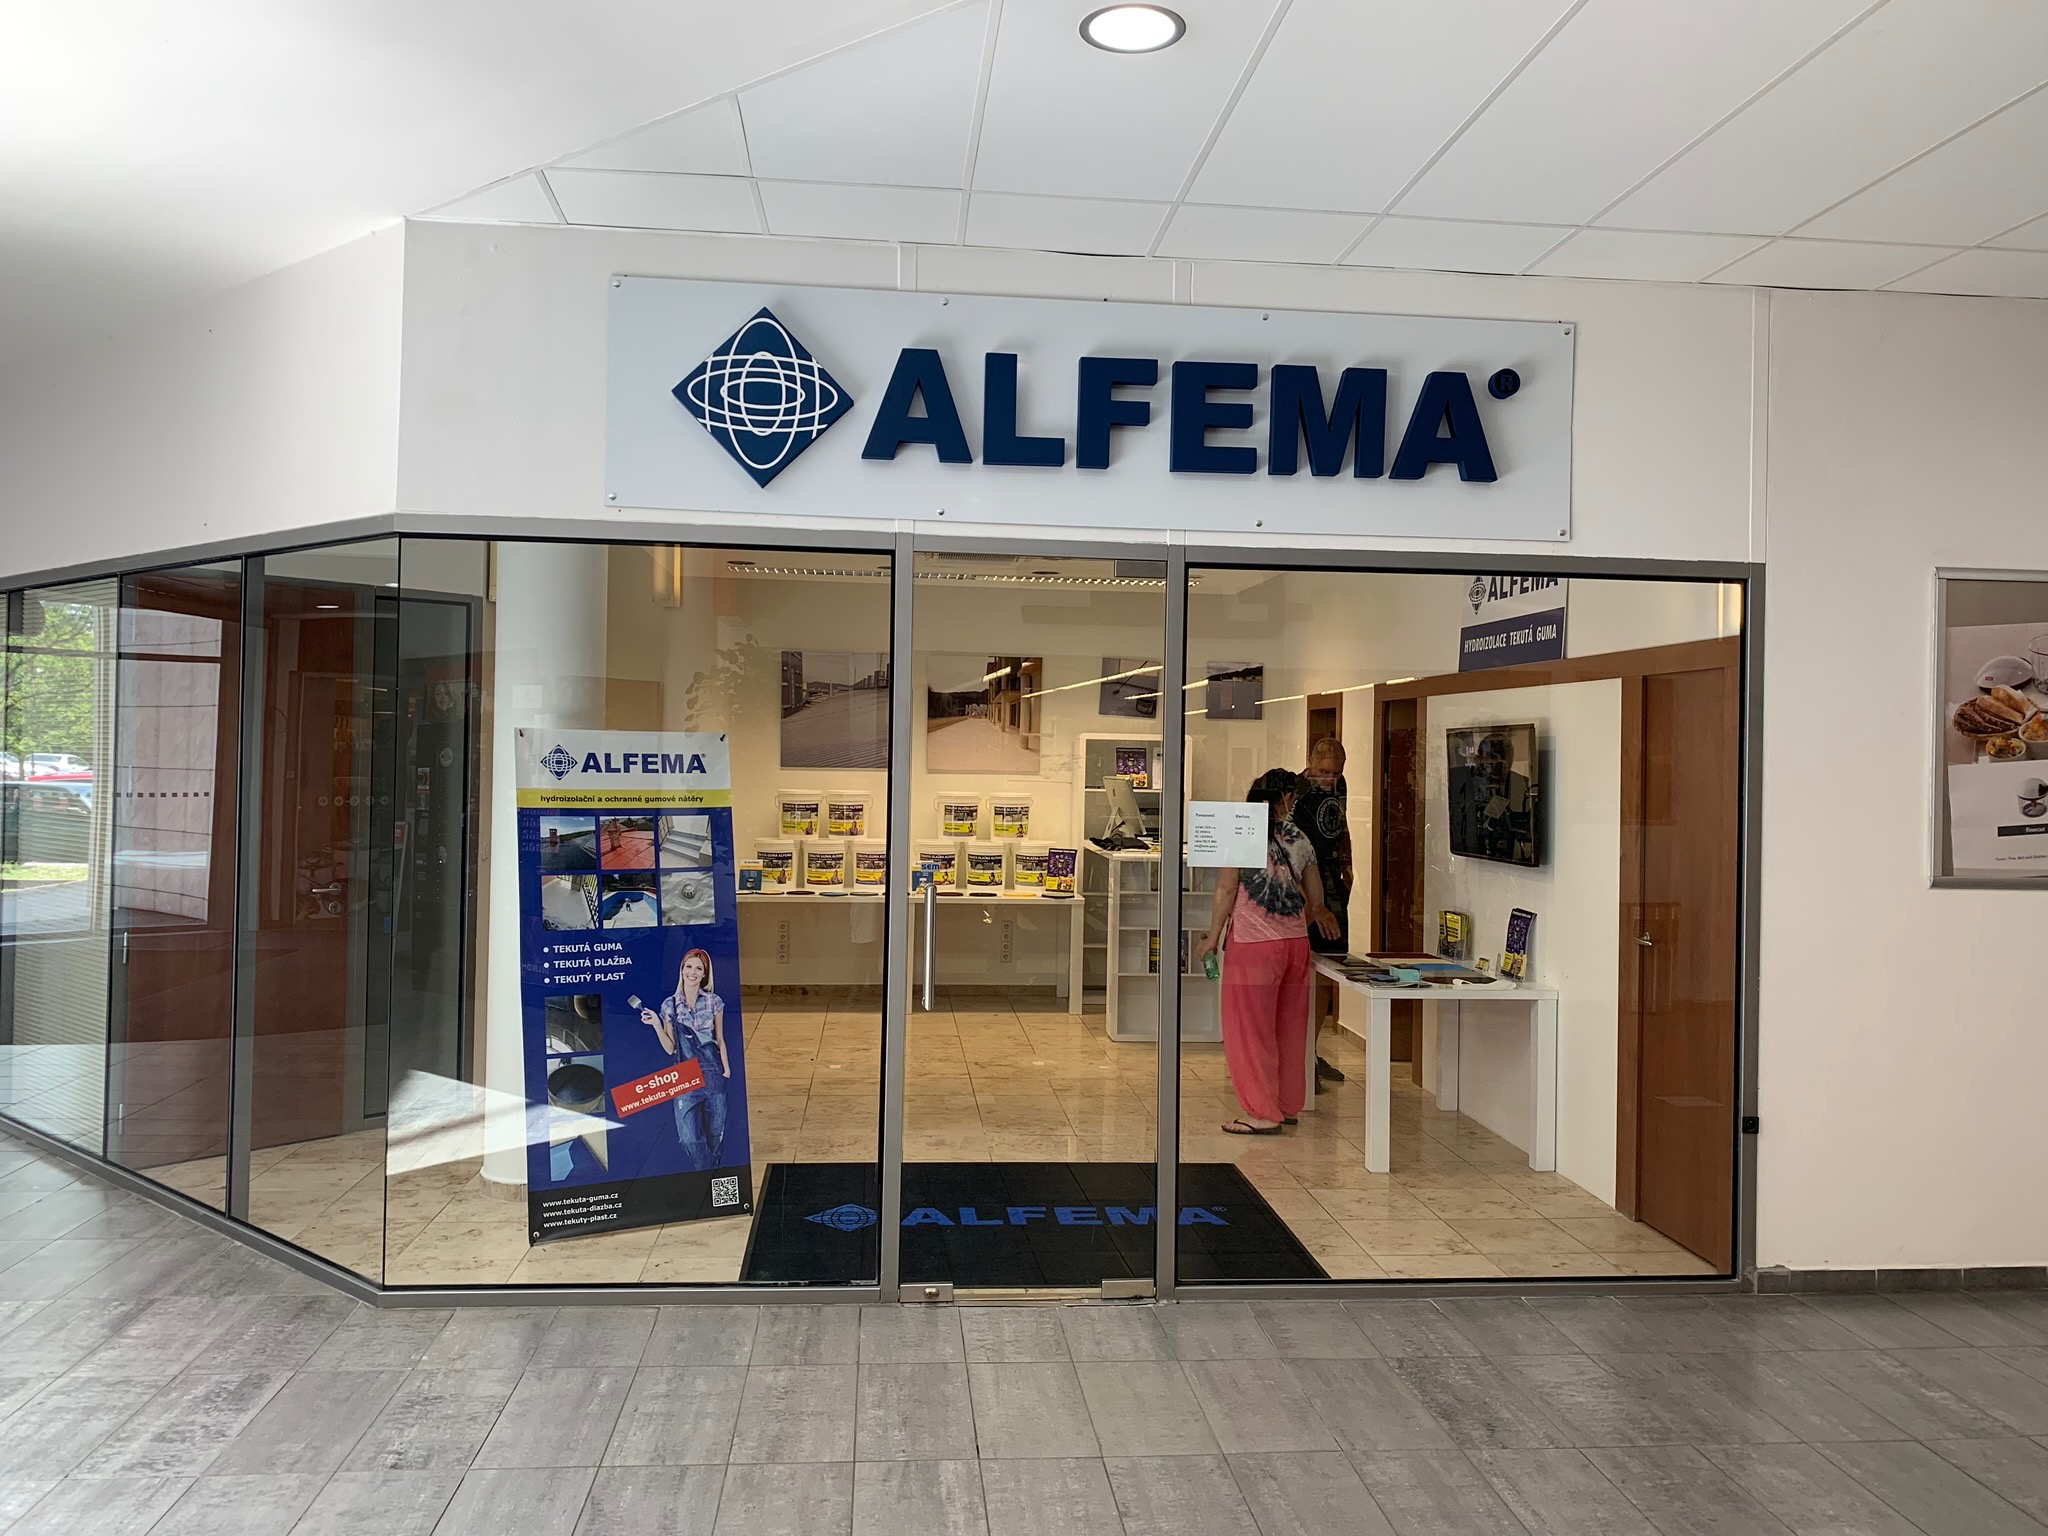 ÚJ ALFEMA SHOWROOM CZ OPEN